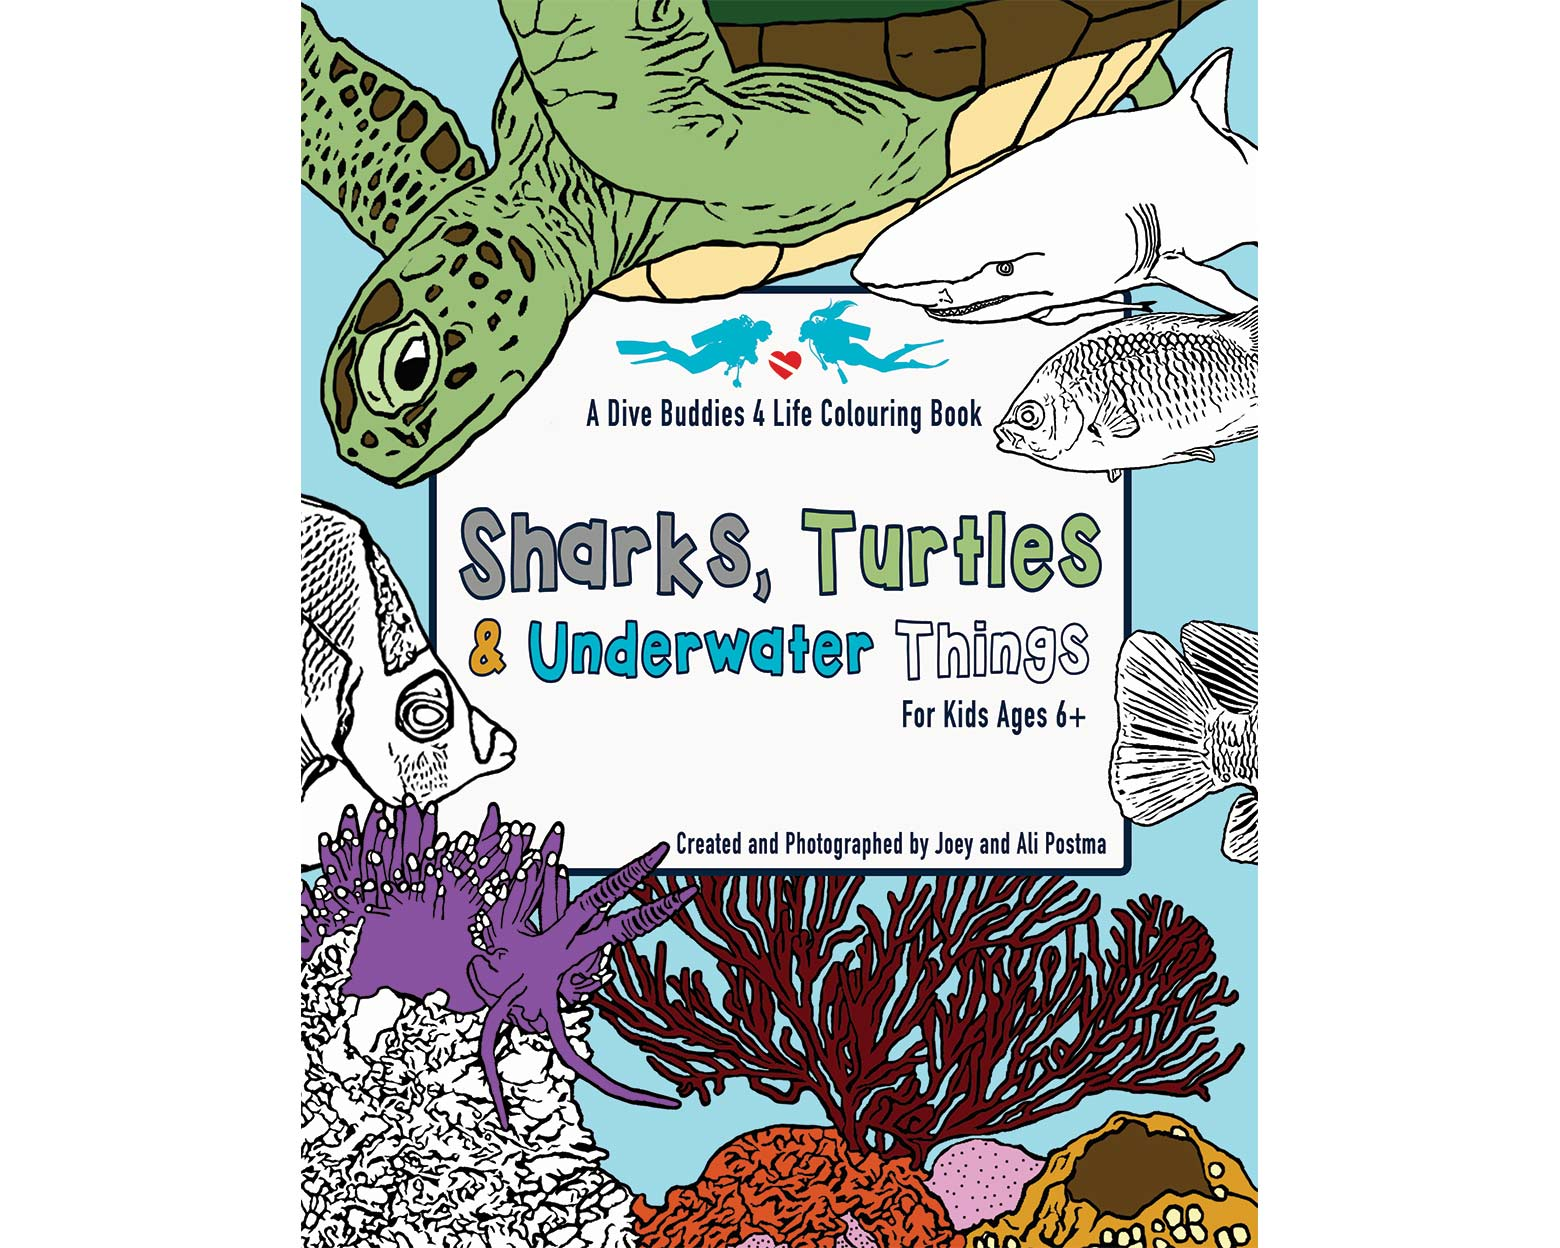 Dive Buddies 4 Life Colouring Book Sharks, Turtles And Underwater Things